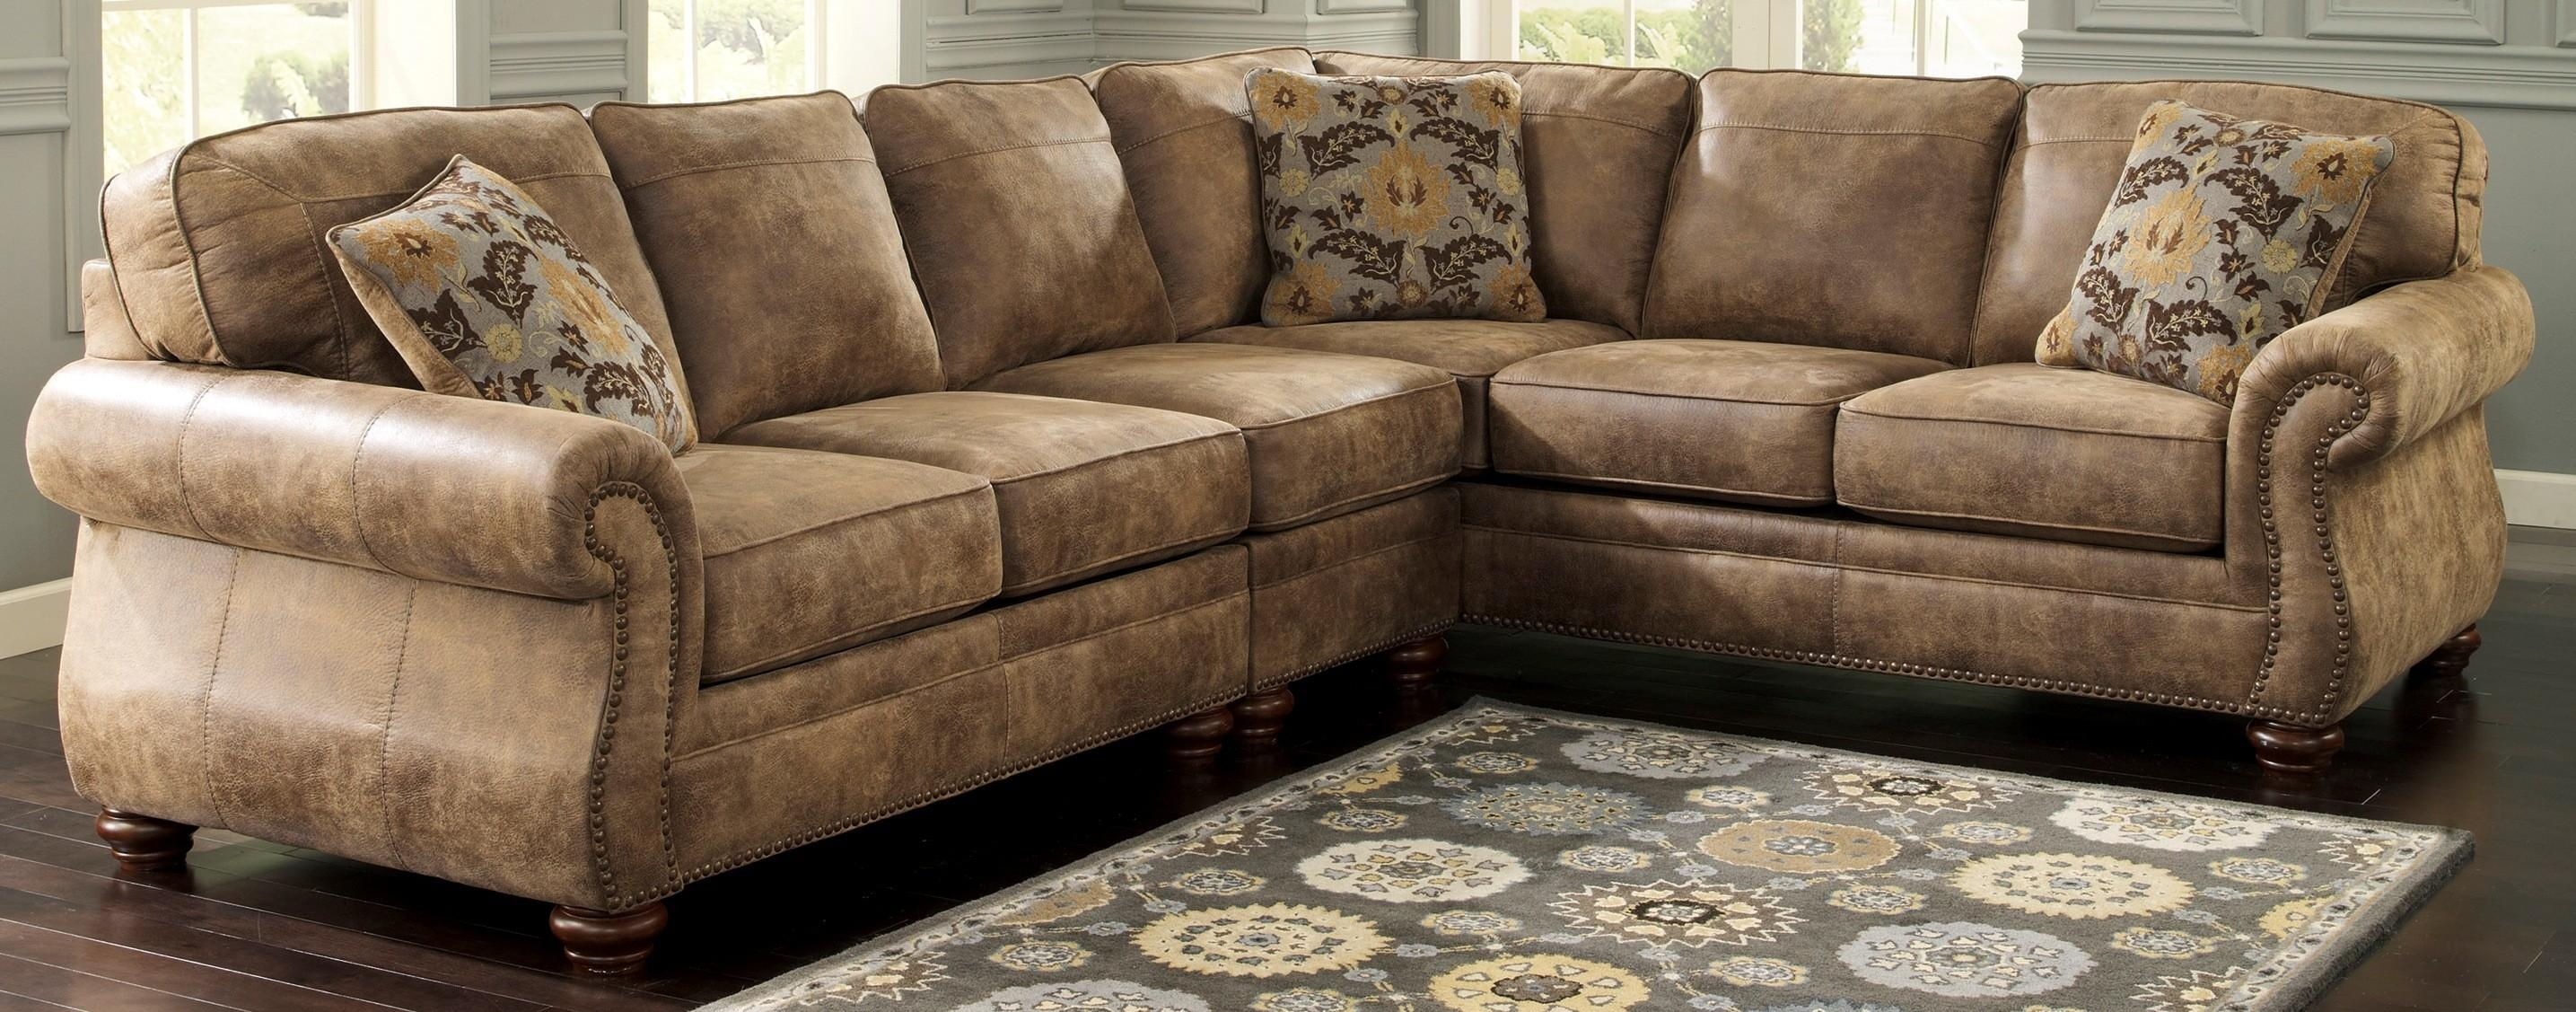 faux leather sectional sofa ashley how to make a camelback slipcover 20 collection of sofas ideas and within